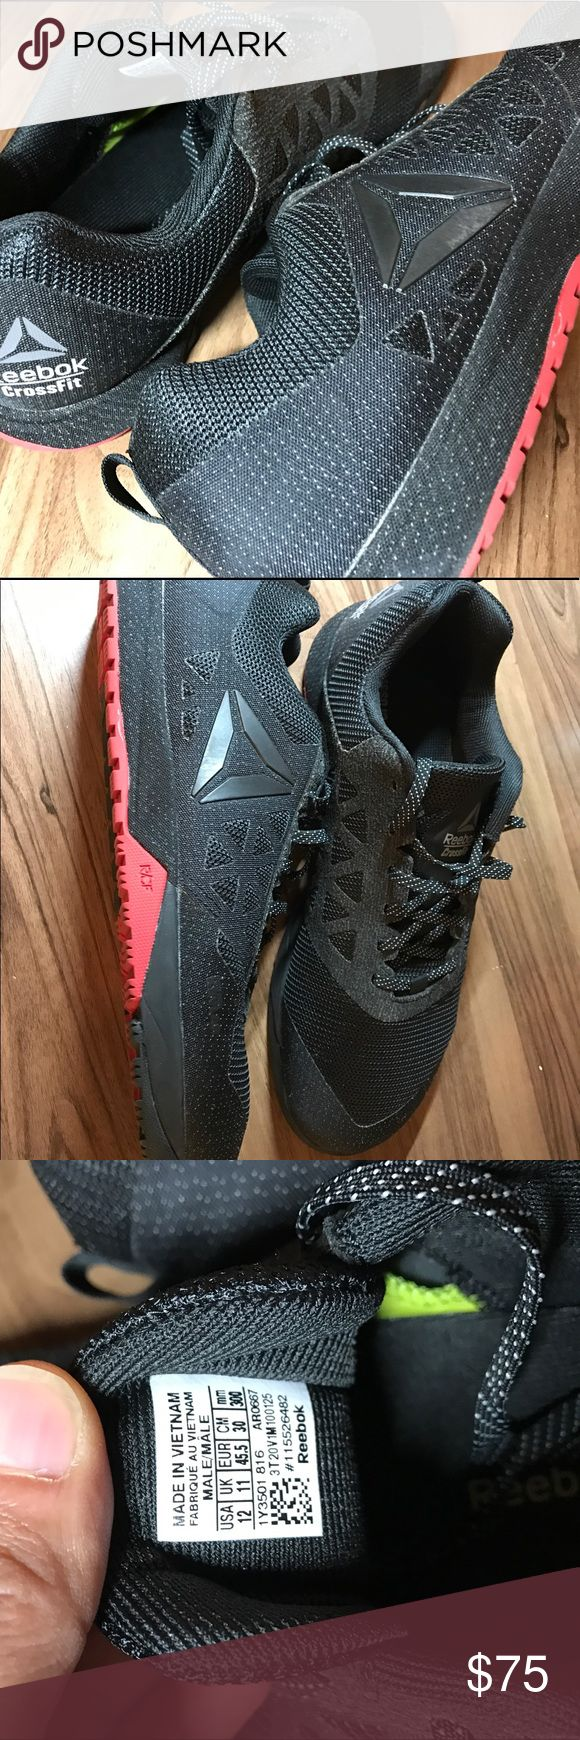 CrossFit Nanos 6.0 Black/Red - Men's Size 12 Lightly used, less than 5 times, just too small and don't fit me, comes with box and all original content. Whether you CrossFit or not, these are fantastic shoes at a great price! Reebok Shoes Athletic Shoes